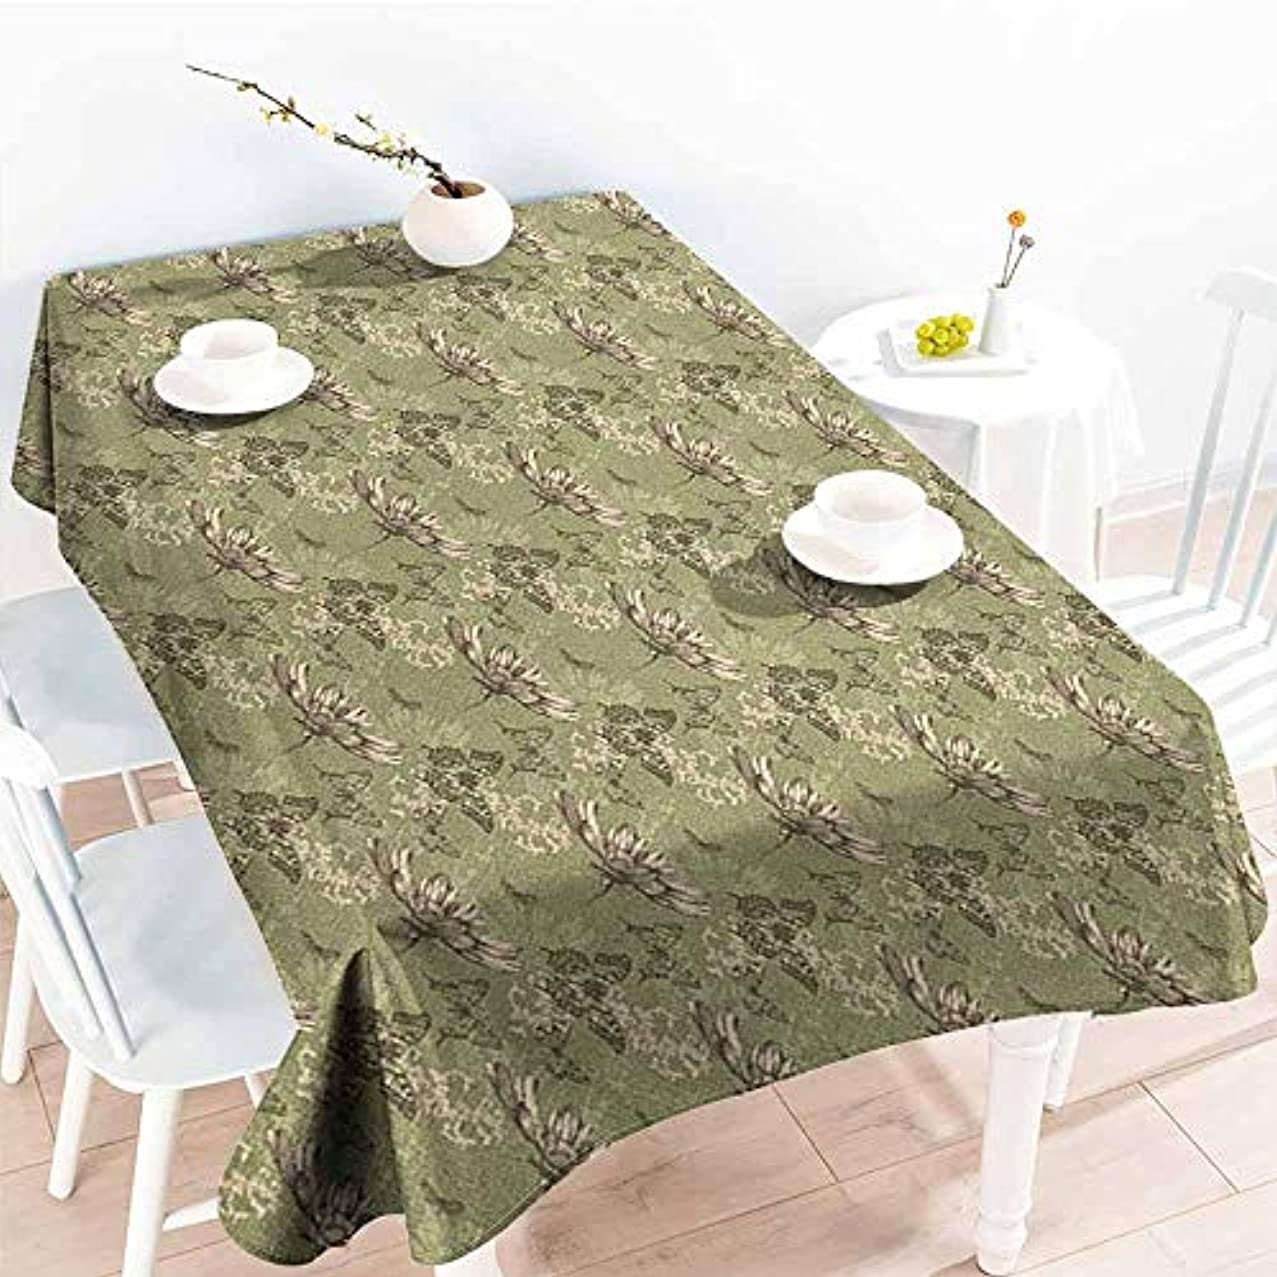 VIVIDX Small Rectangular Tablecloth,Butterfly Hand Drawn Flying Butterflies Abstract Floral Arrangement Vintage Color Palette,Resistant/Spill-Proof/Waterproof Table Cover,W60x120L, Khaki Beige